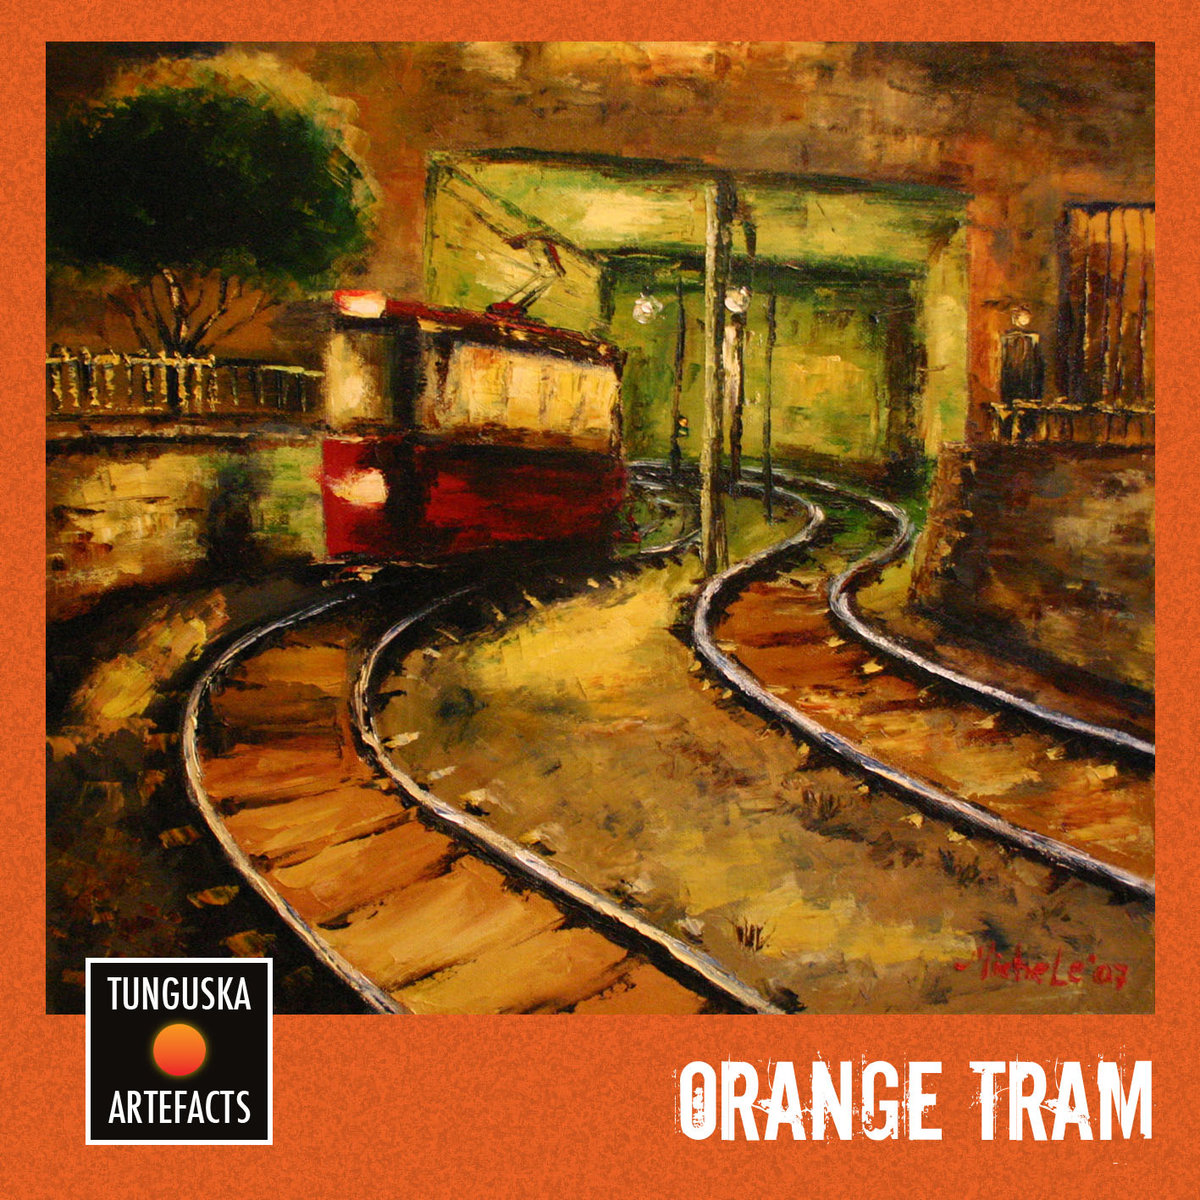 Tunguska Artefacts - Orange Tram (artwork)